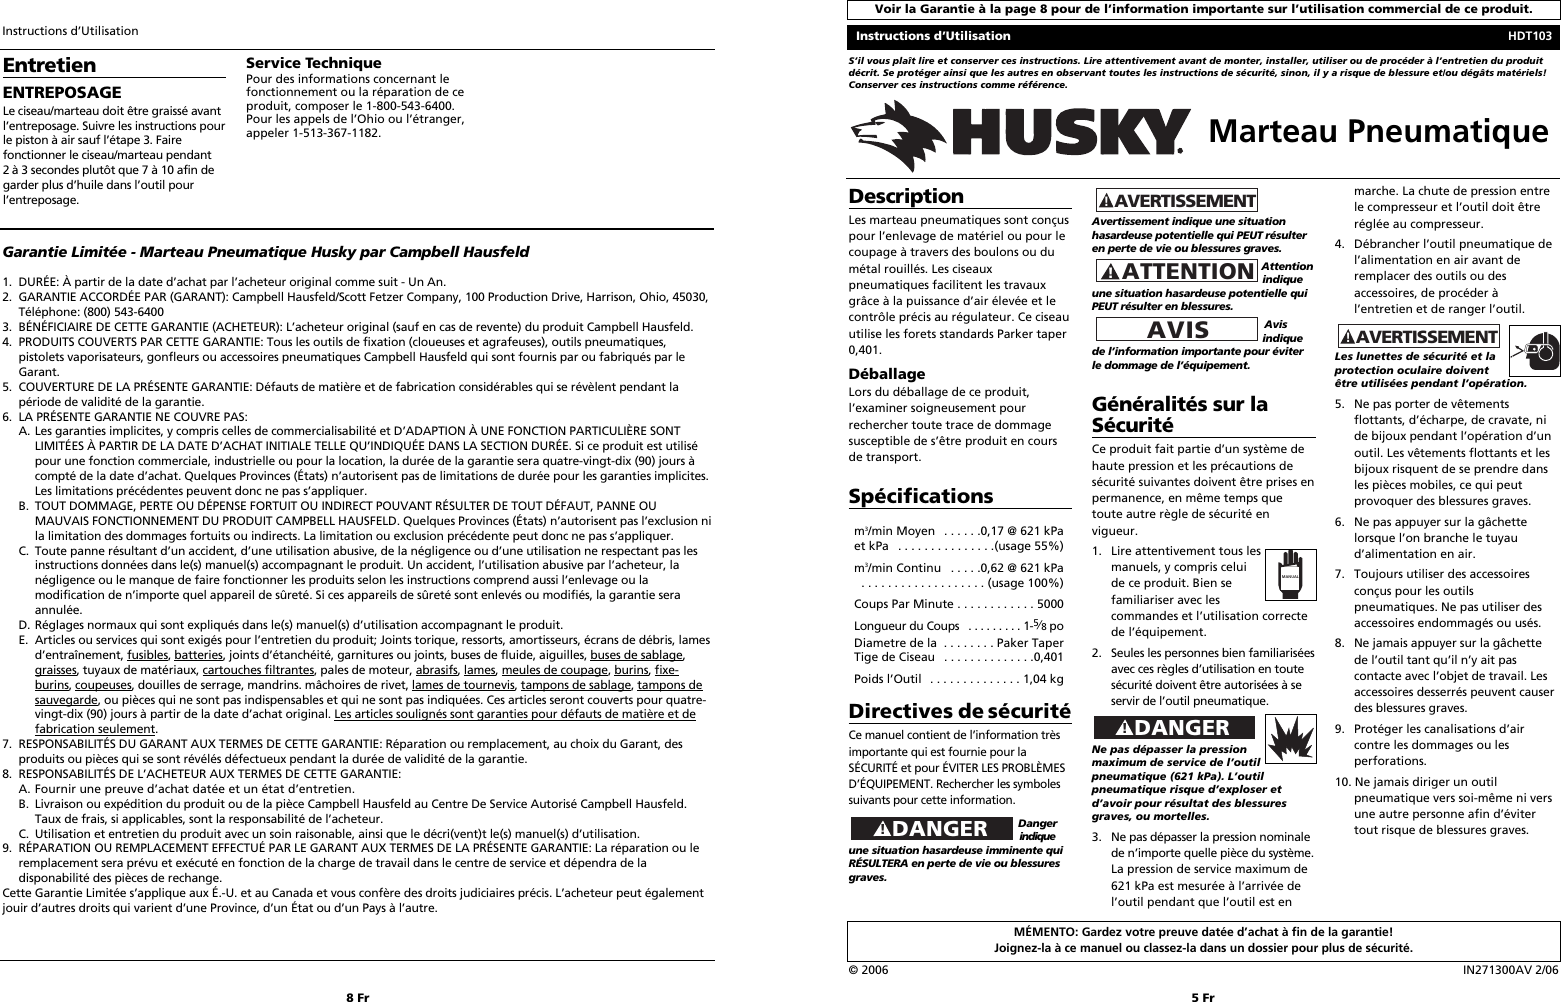 Husky Hdt103 Users Manual 2713 0206